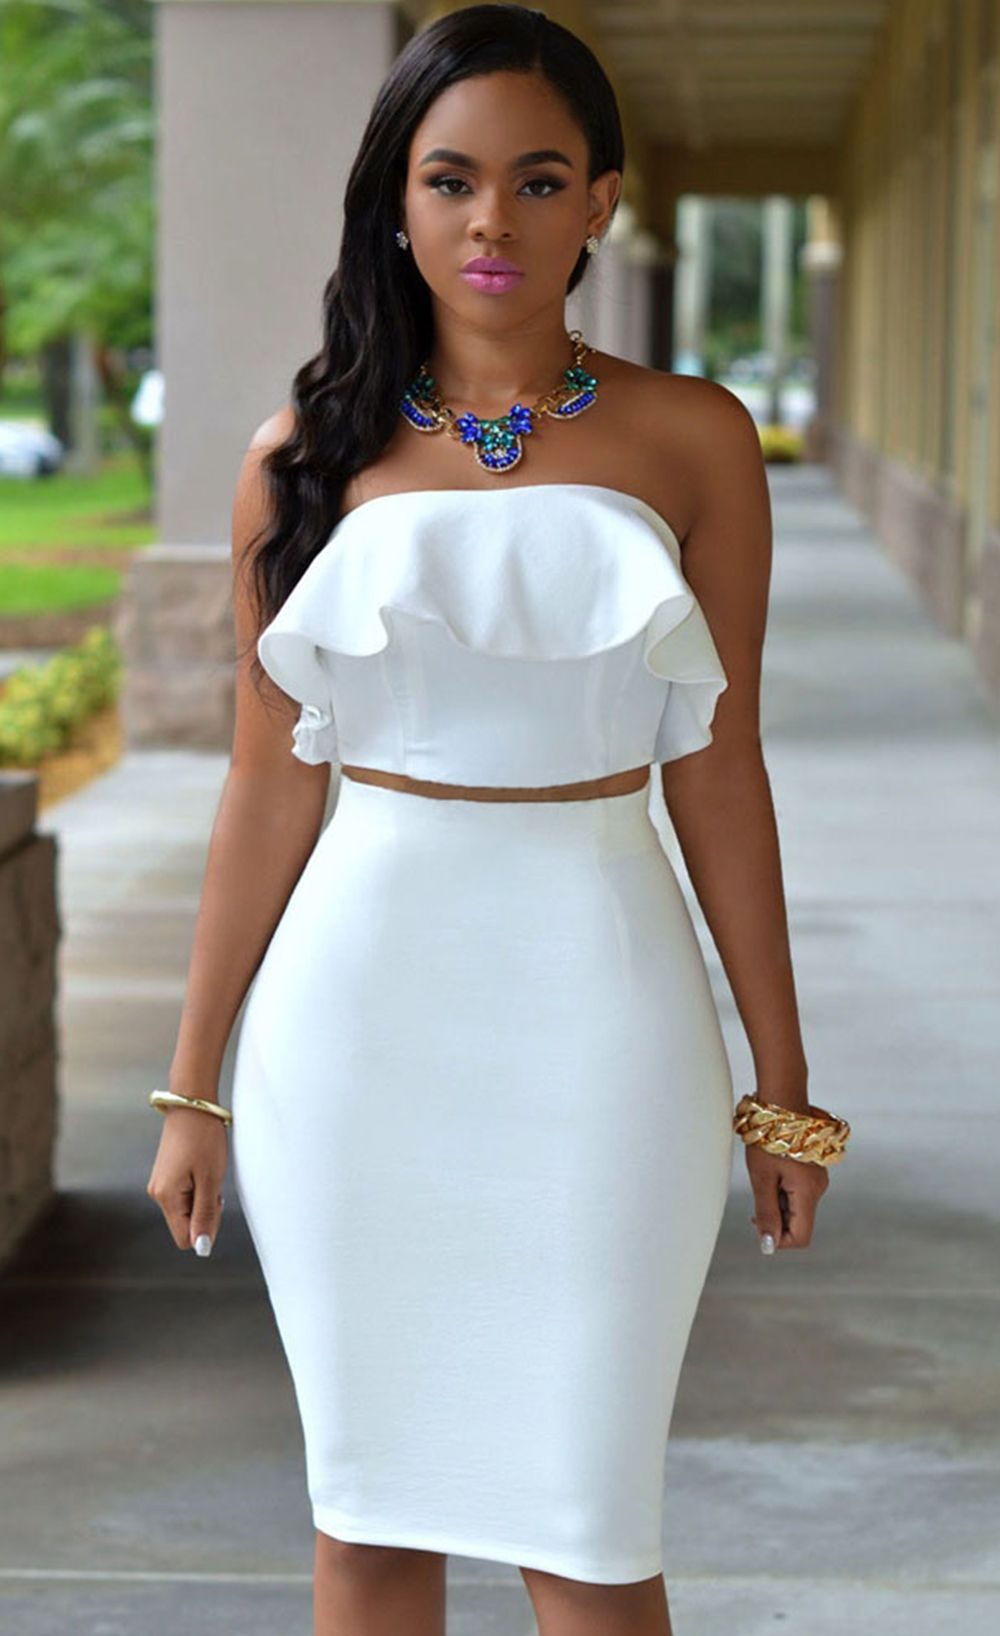 c24fb63e38b $29.99 Ruffle Two-piece Skirt Set | Event Slay | Dresses, White tube ...